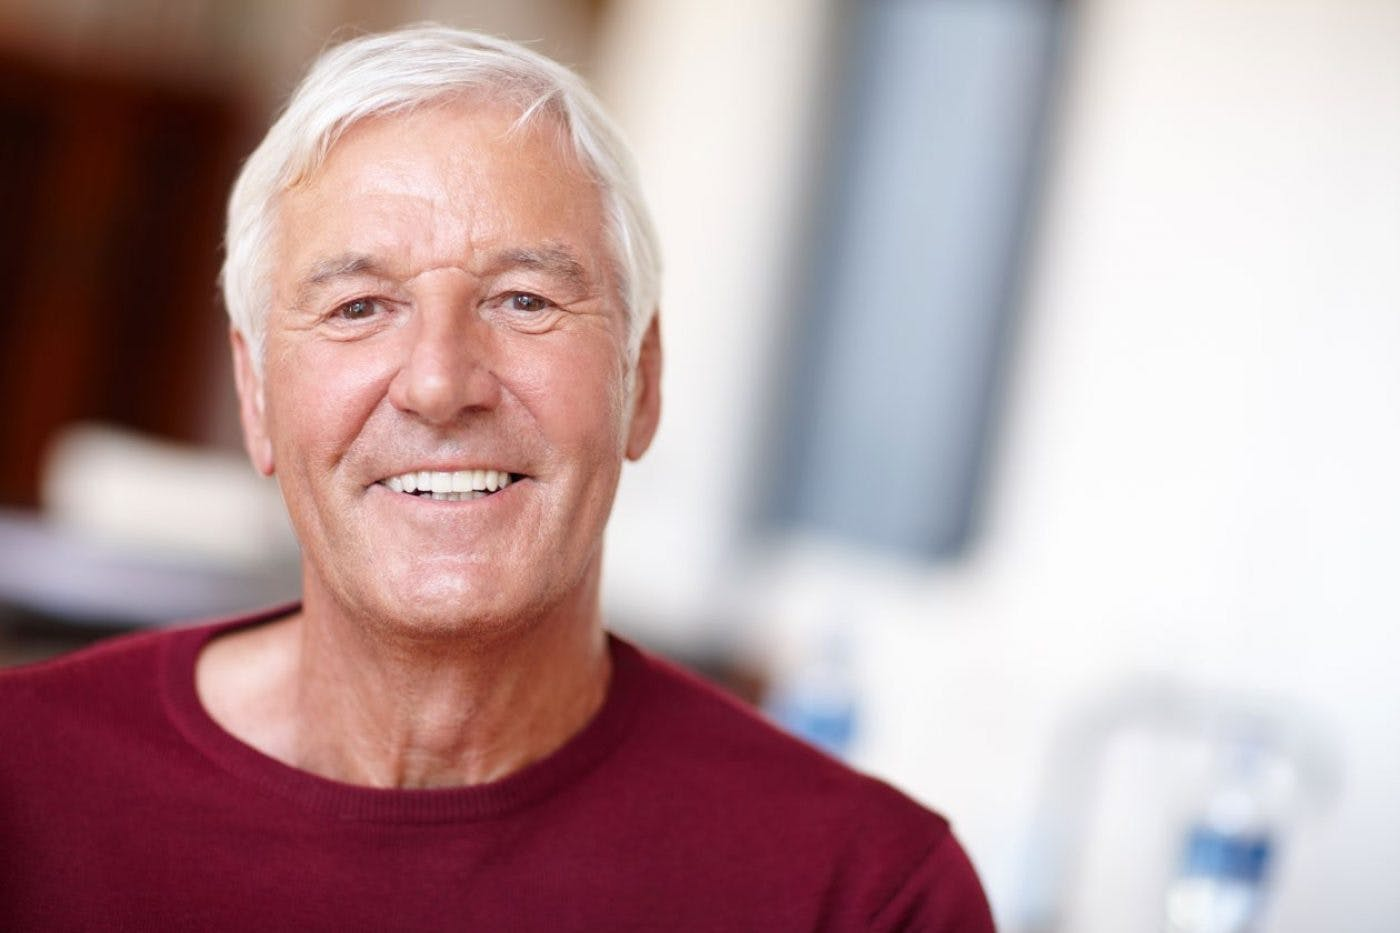 Lymebay Dental Implants Implantsecureddentures